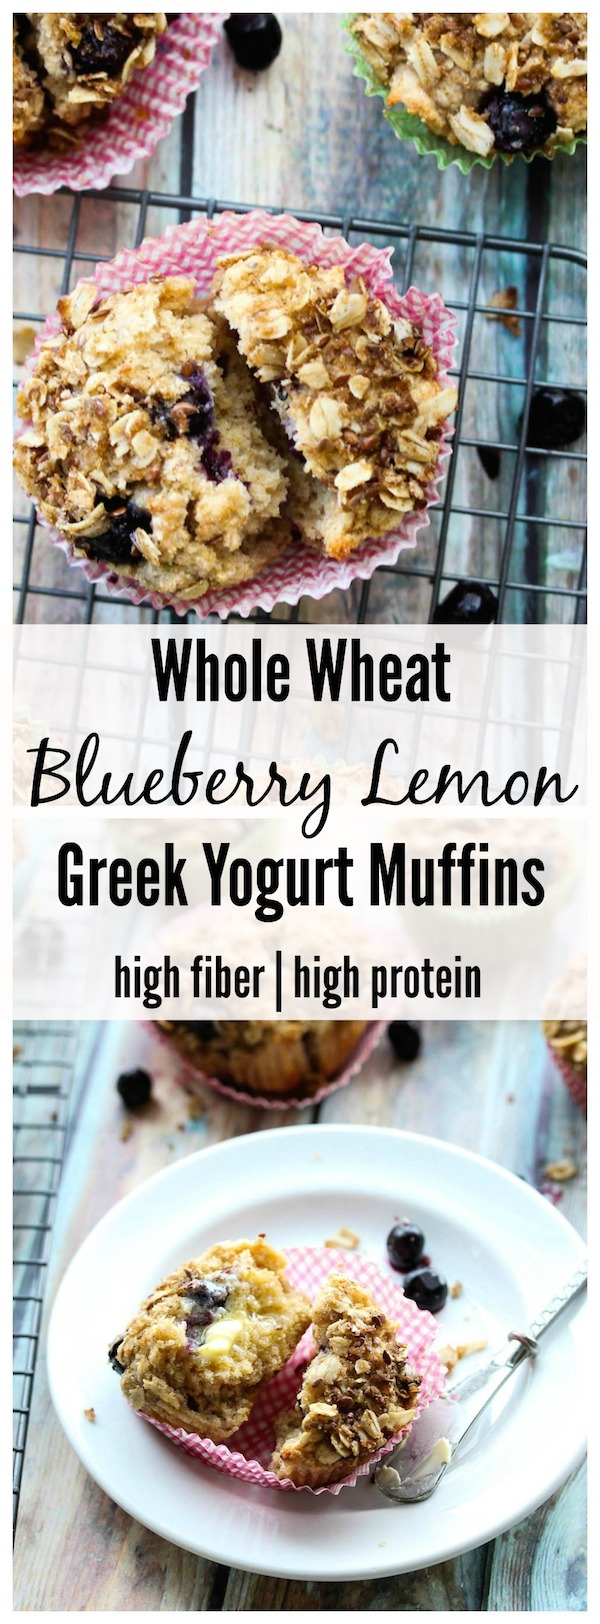 Whole Wheat Blueberry Lemon Greek Yogurt Muffins (high protein, high fiber)